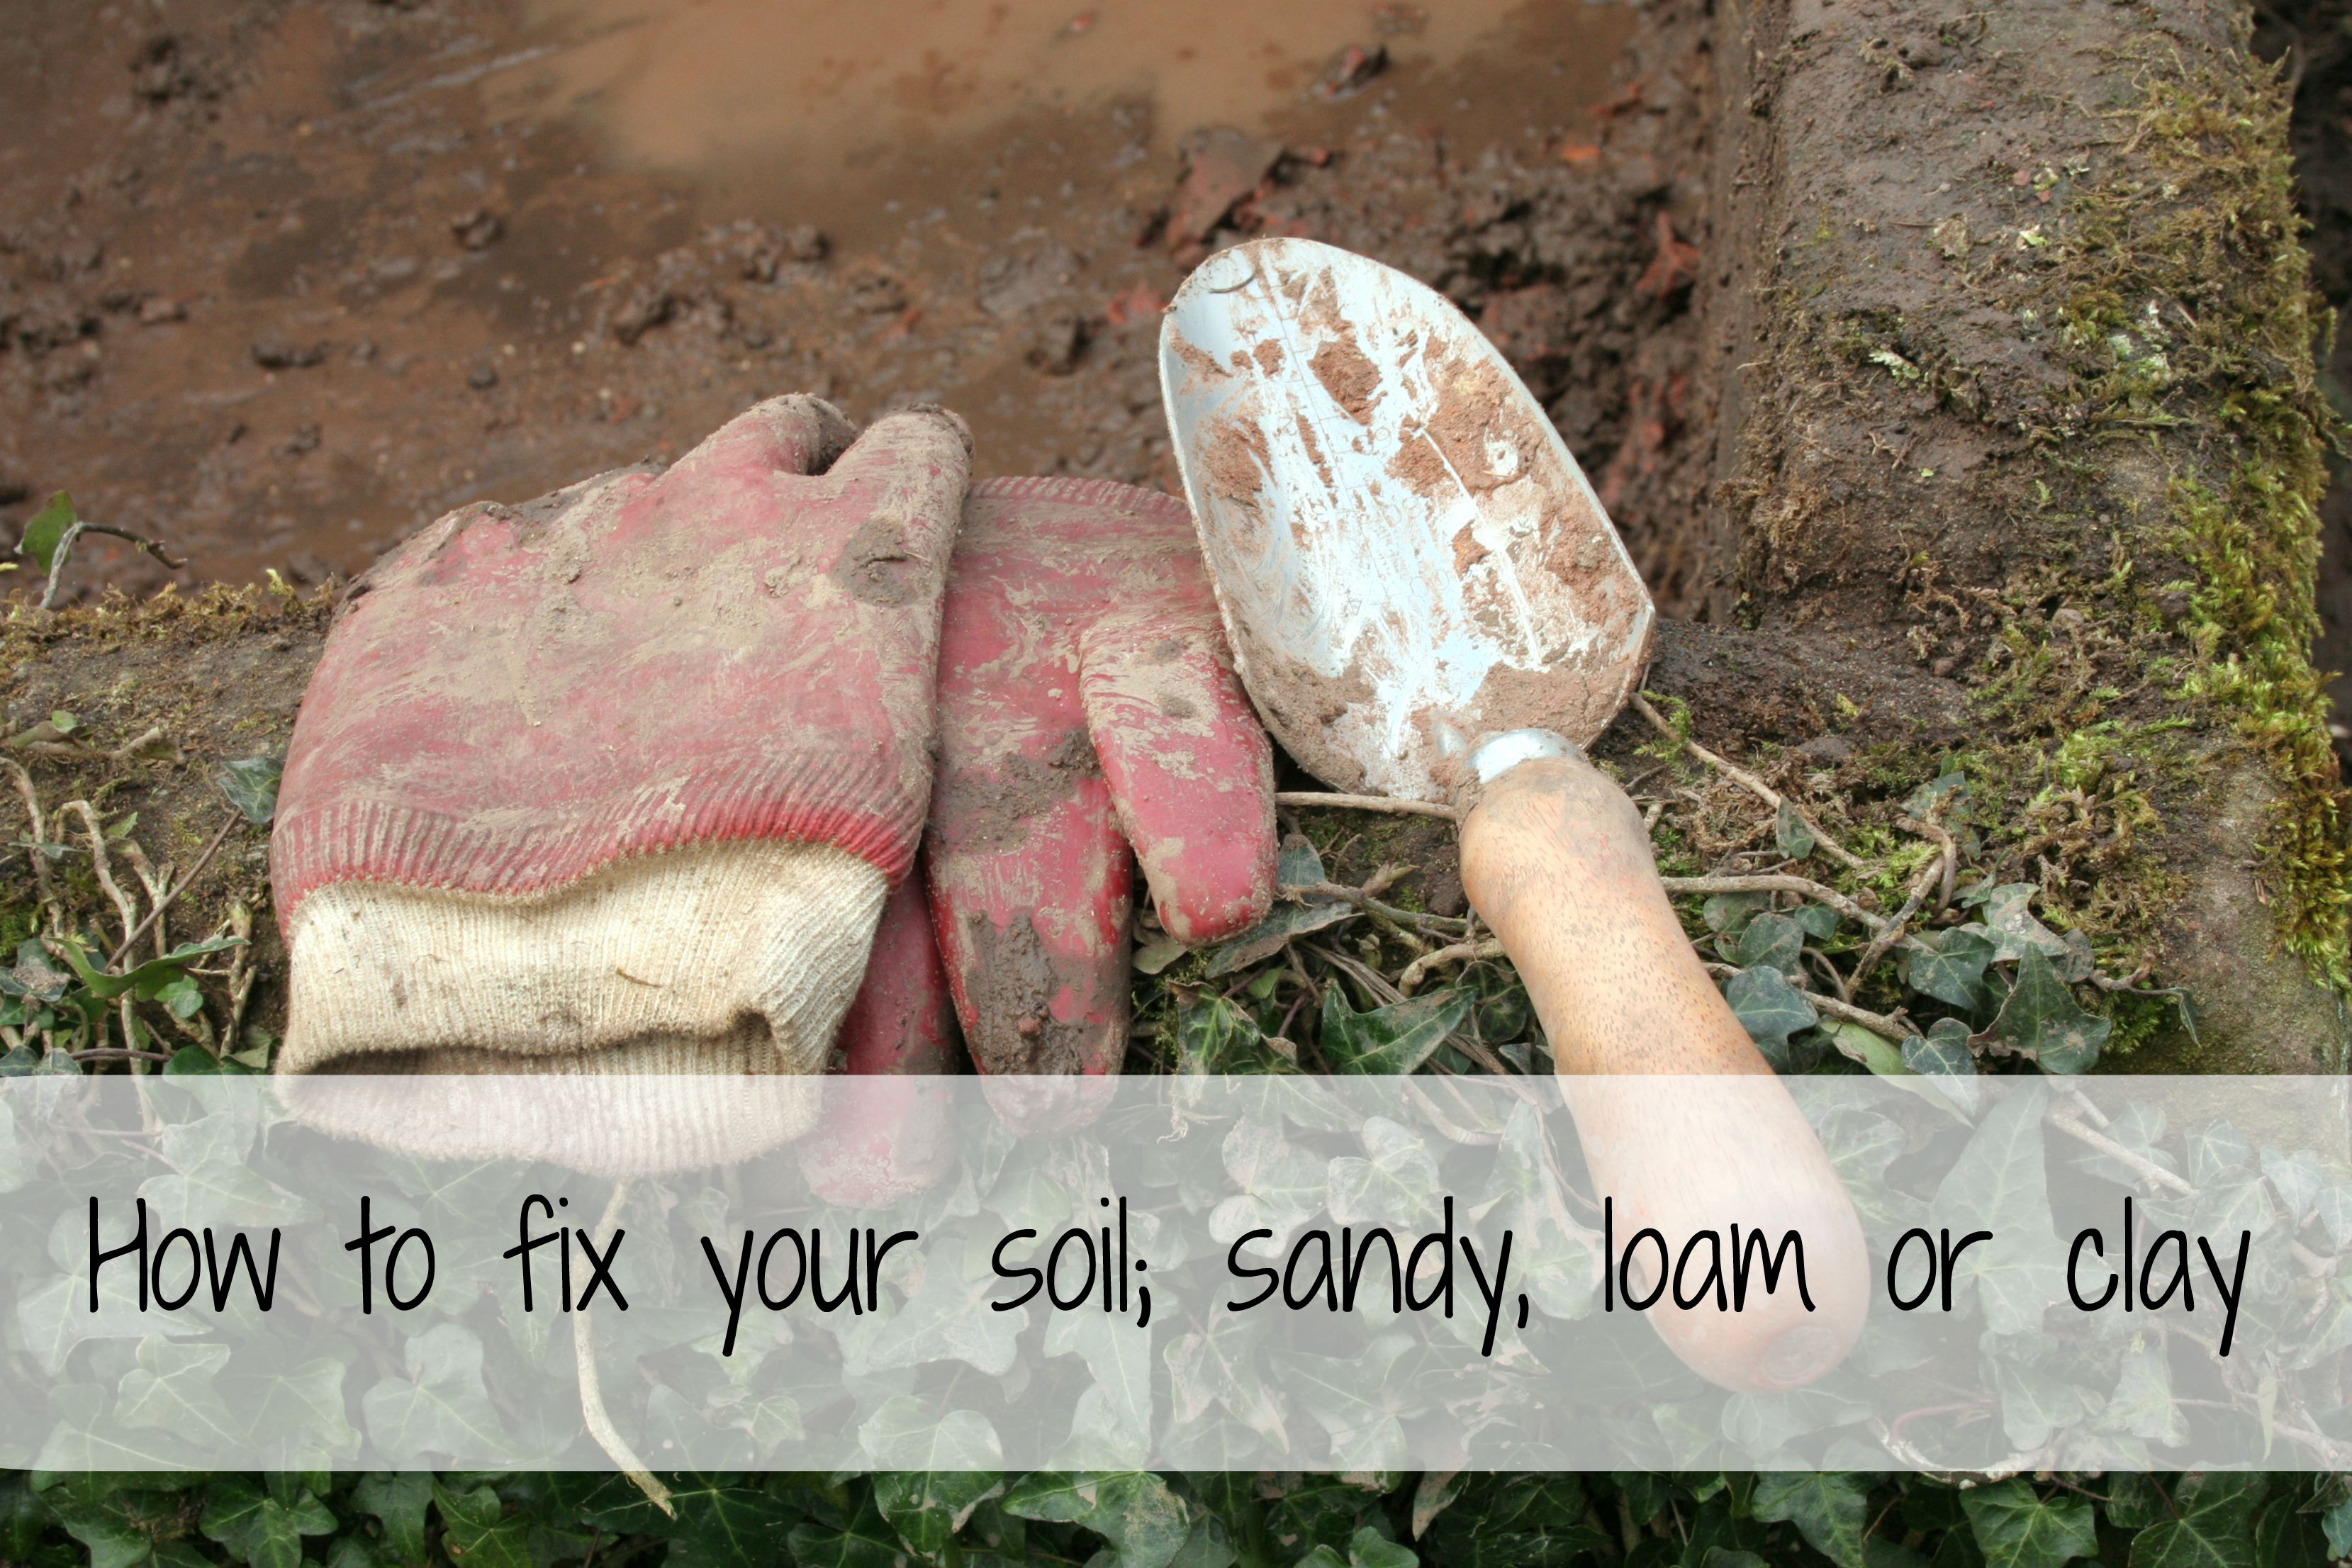 How to fix your soil, sandy, loam or clay